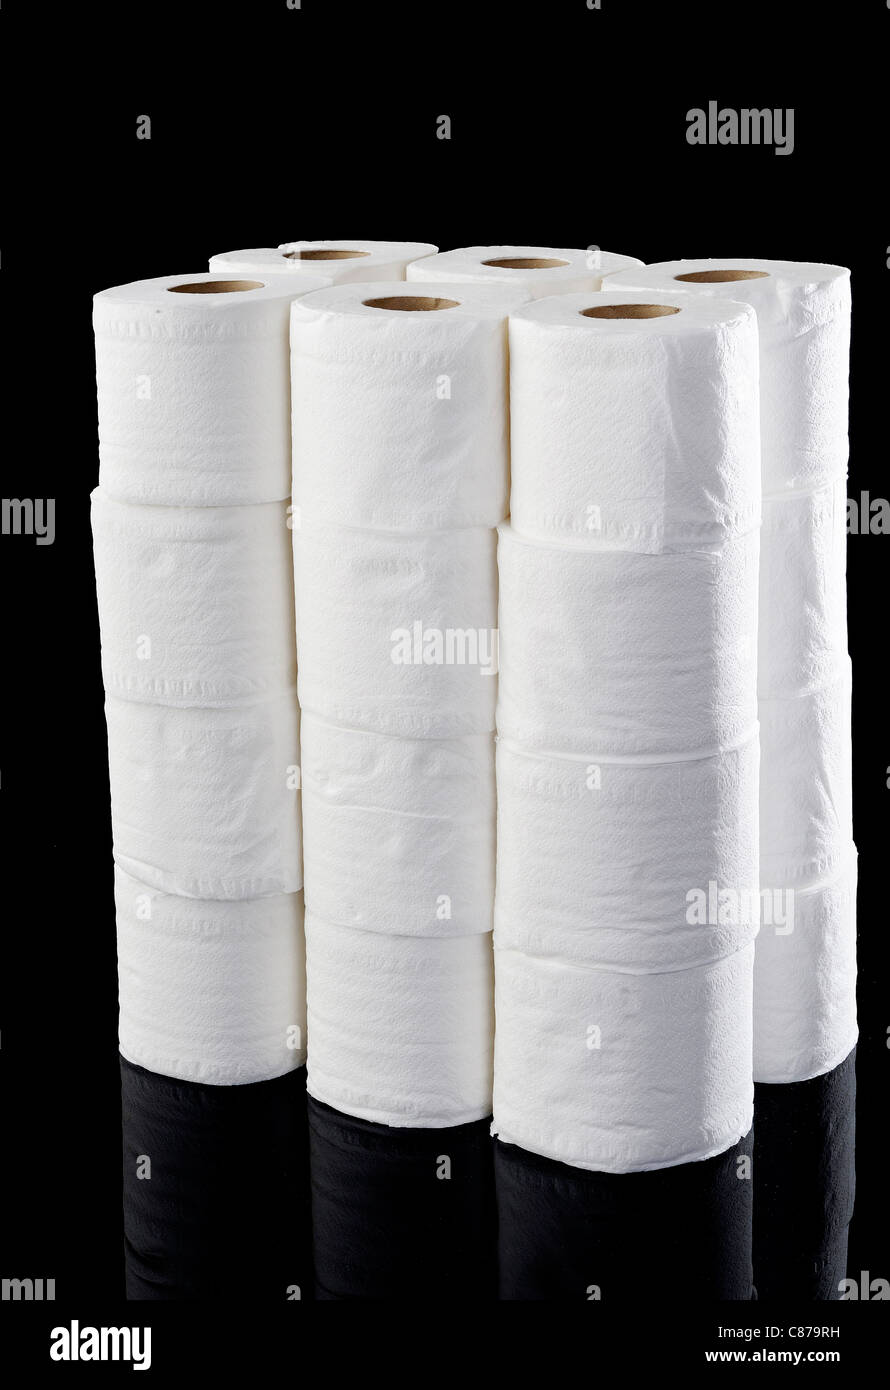 roll tissue on black background Stock Photo